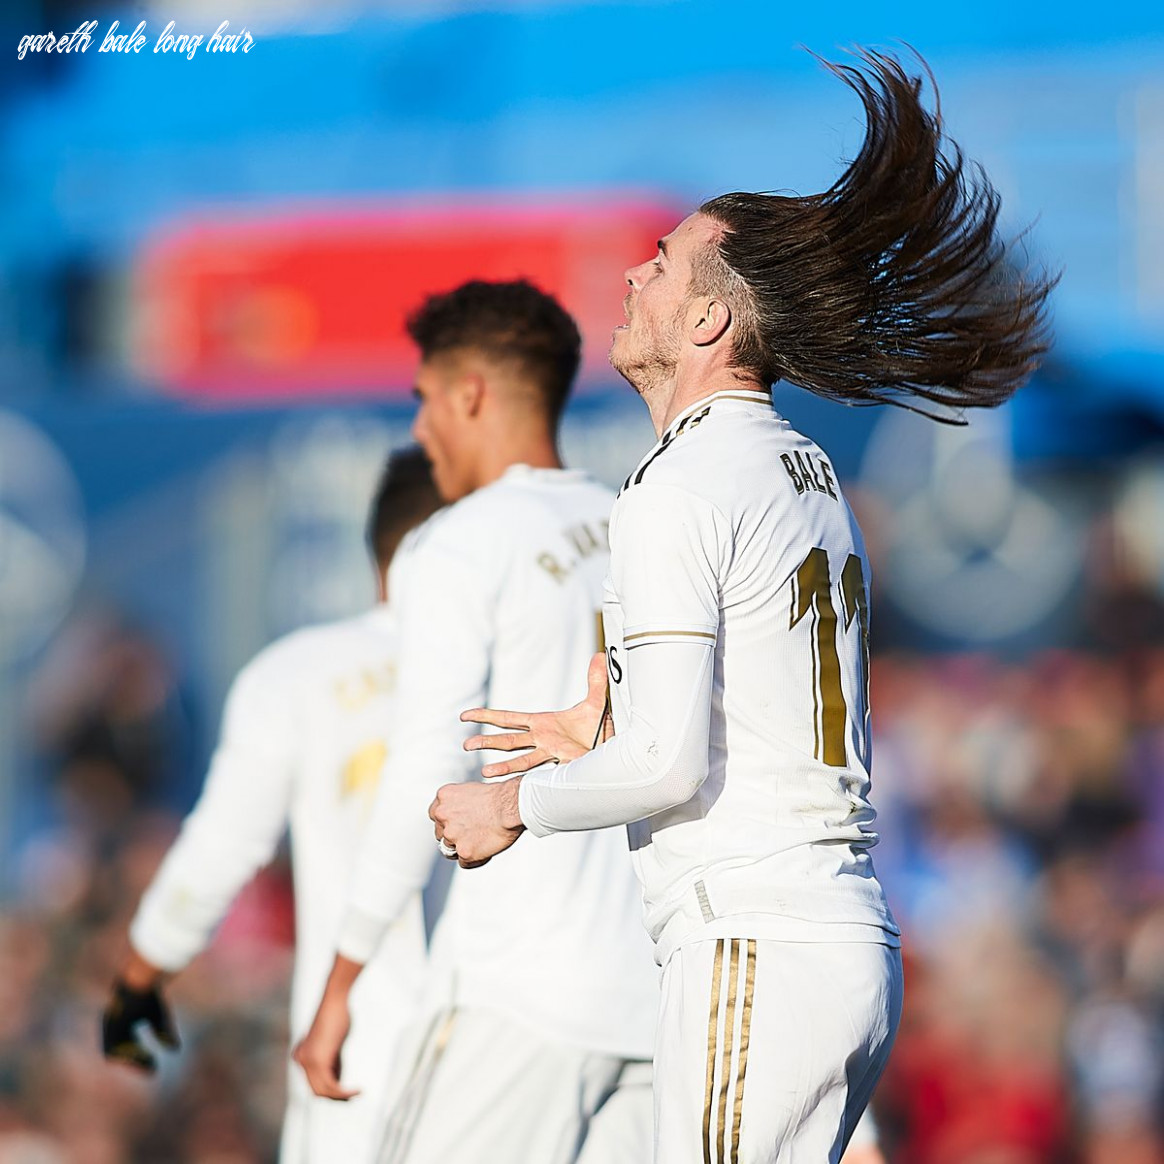 Gareth bale unfurls famous man bun in the middle of real madrid